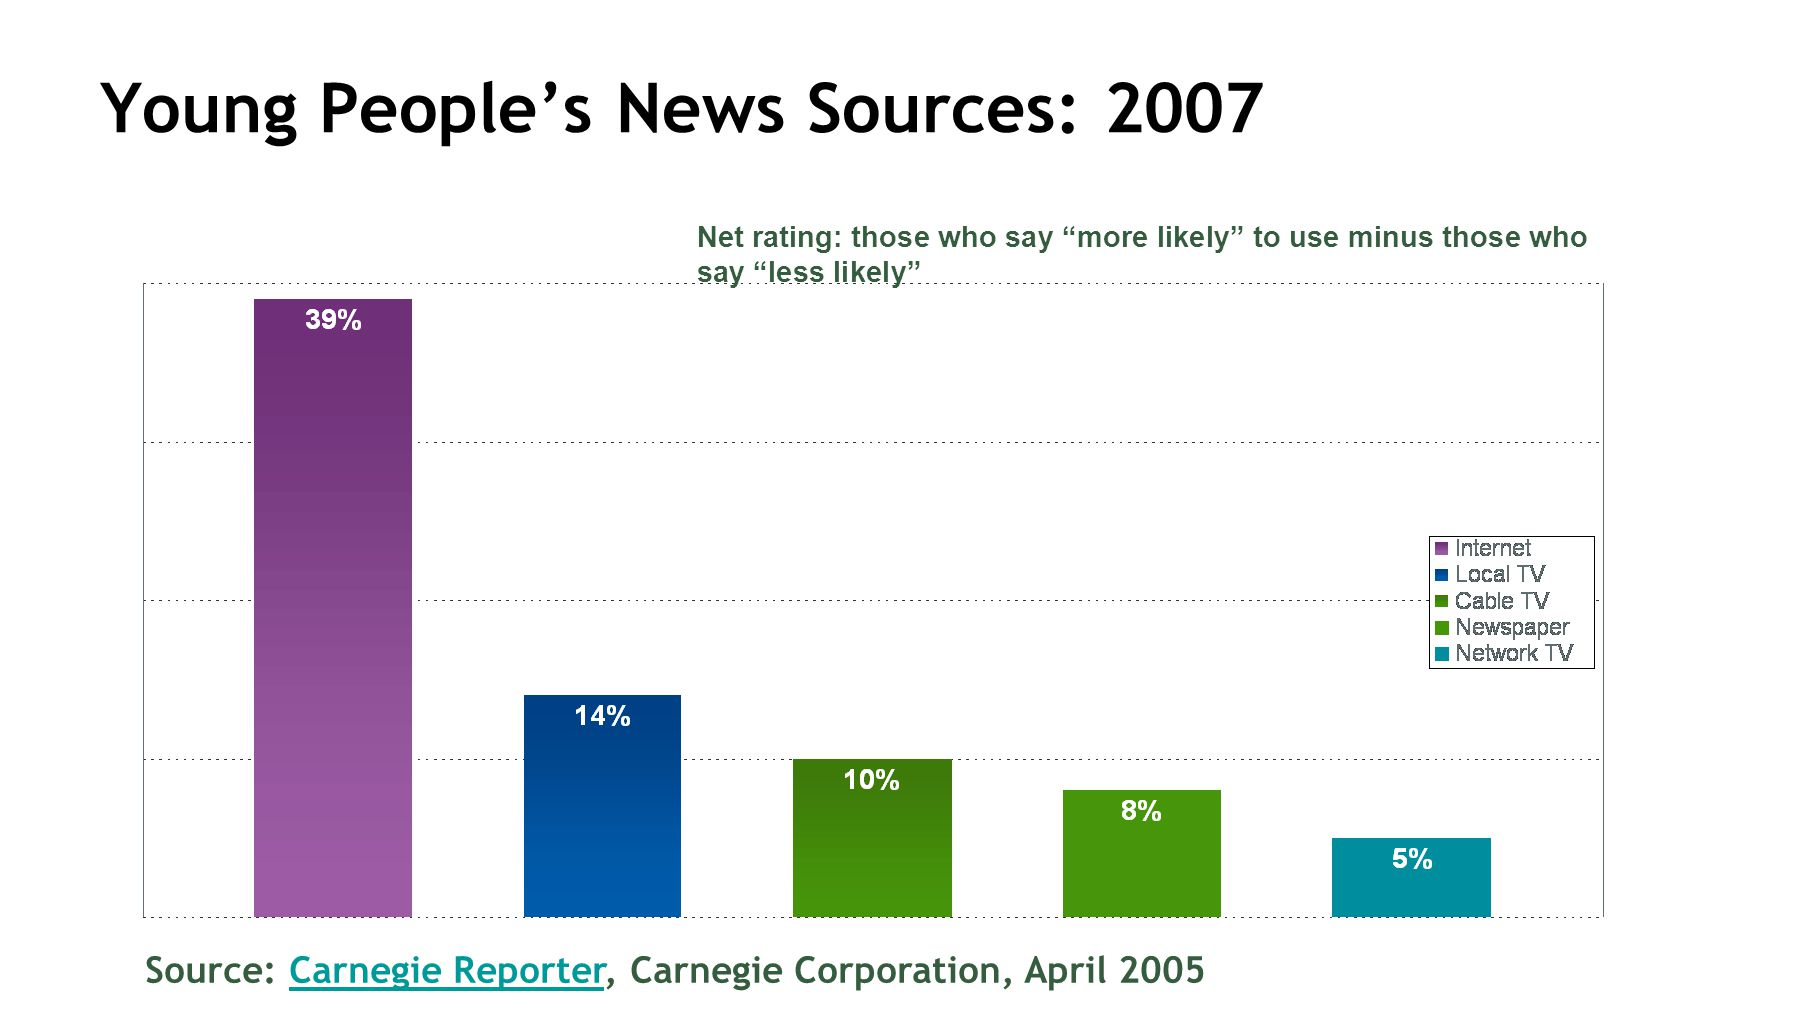 Young Peoples News Sources: 2007 Source: Carnegie Reporter, Carnegie Corporation, April 2005Carnegie Reporter Net rating: those who say more likely to use minus those who say less likely